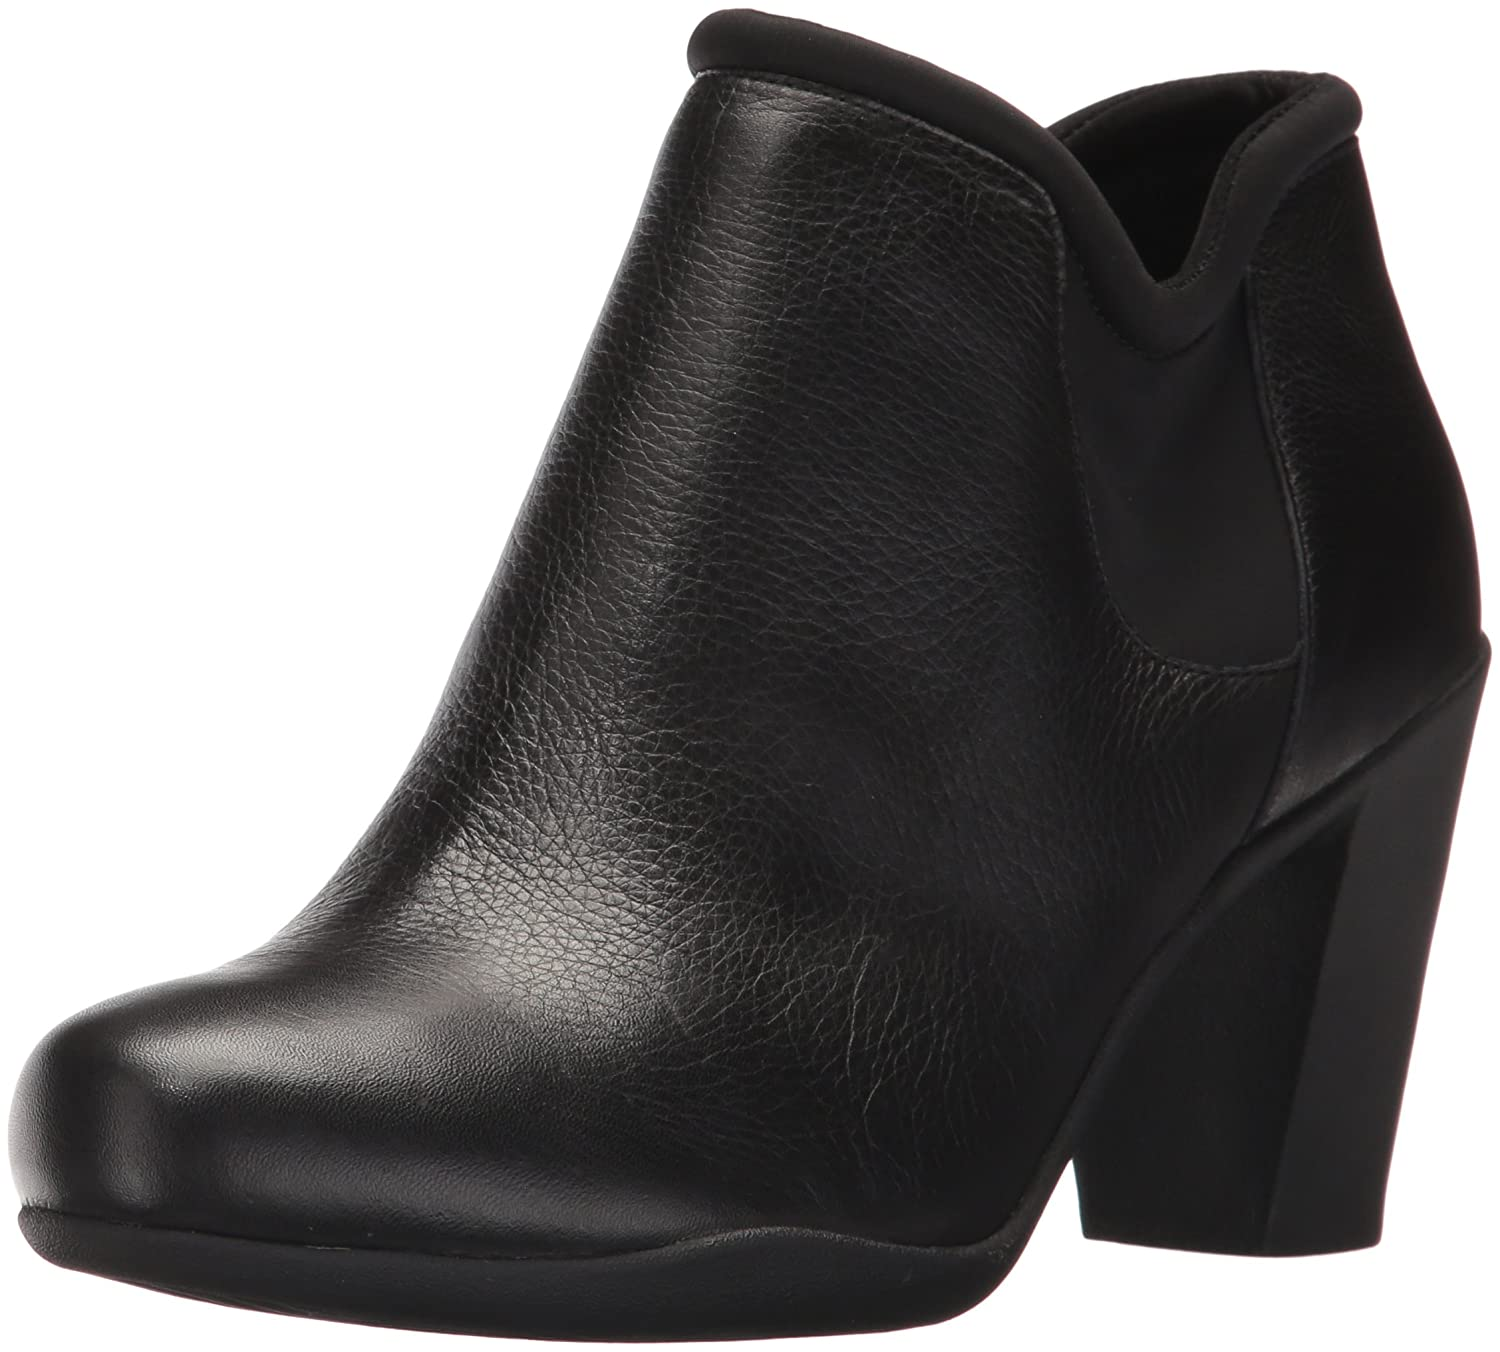 CLARKS Women's Adya Bella Ankle Bootie B01N0T6IAI 9.5 W US|Black Leather